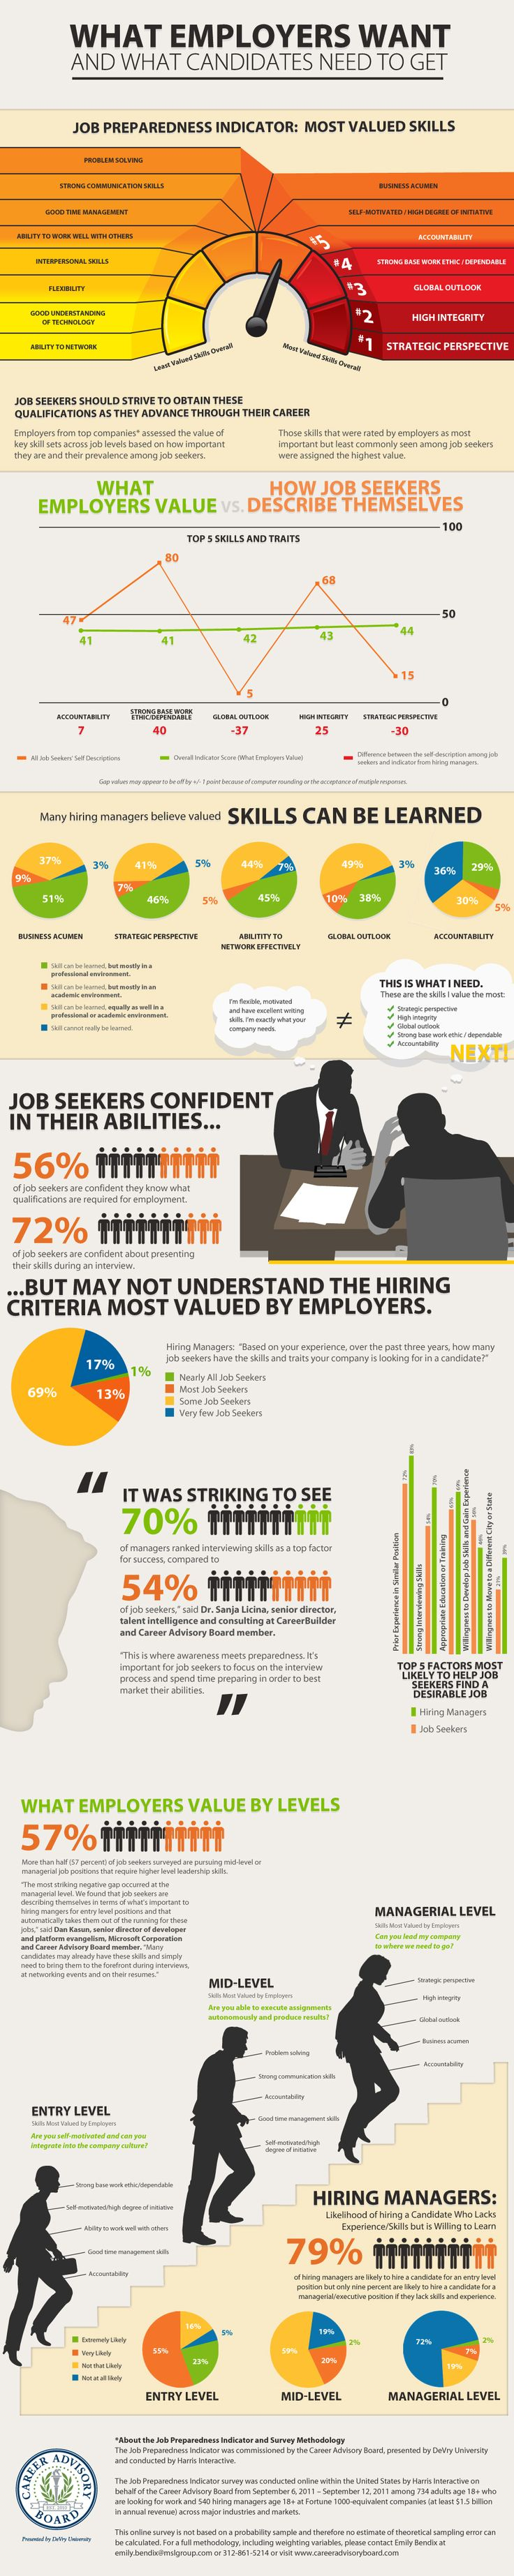 What Employers Want and What Candidates Need to Get.  Skill sets to set you apart! #career